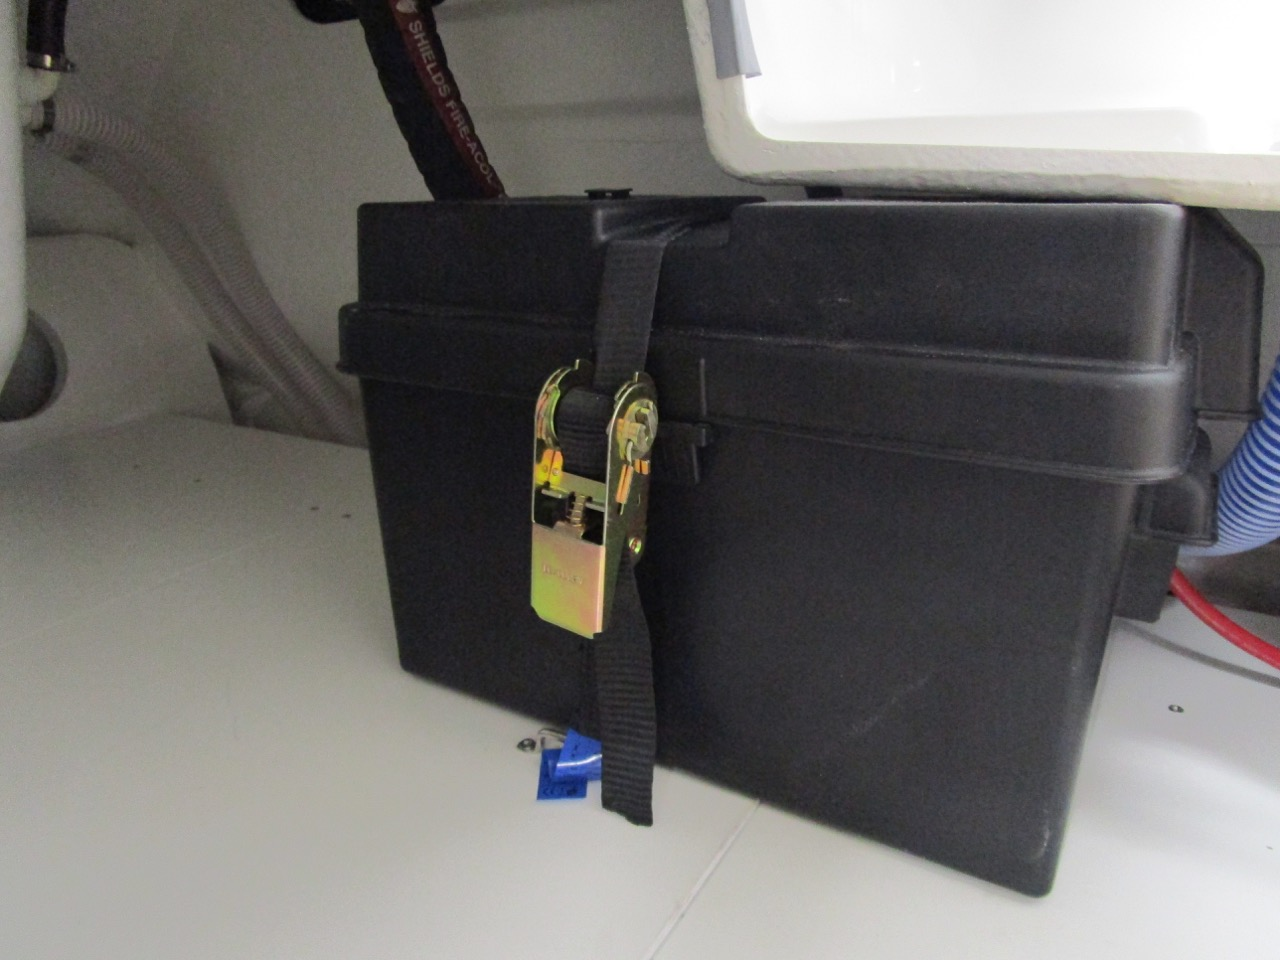 E780 - Ratchet strap battery security - ready for anything!